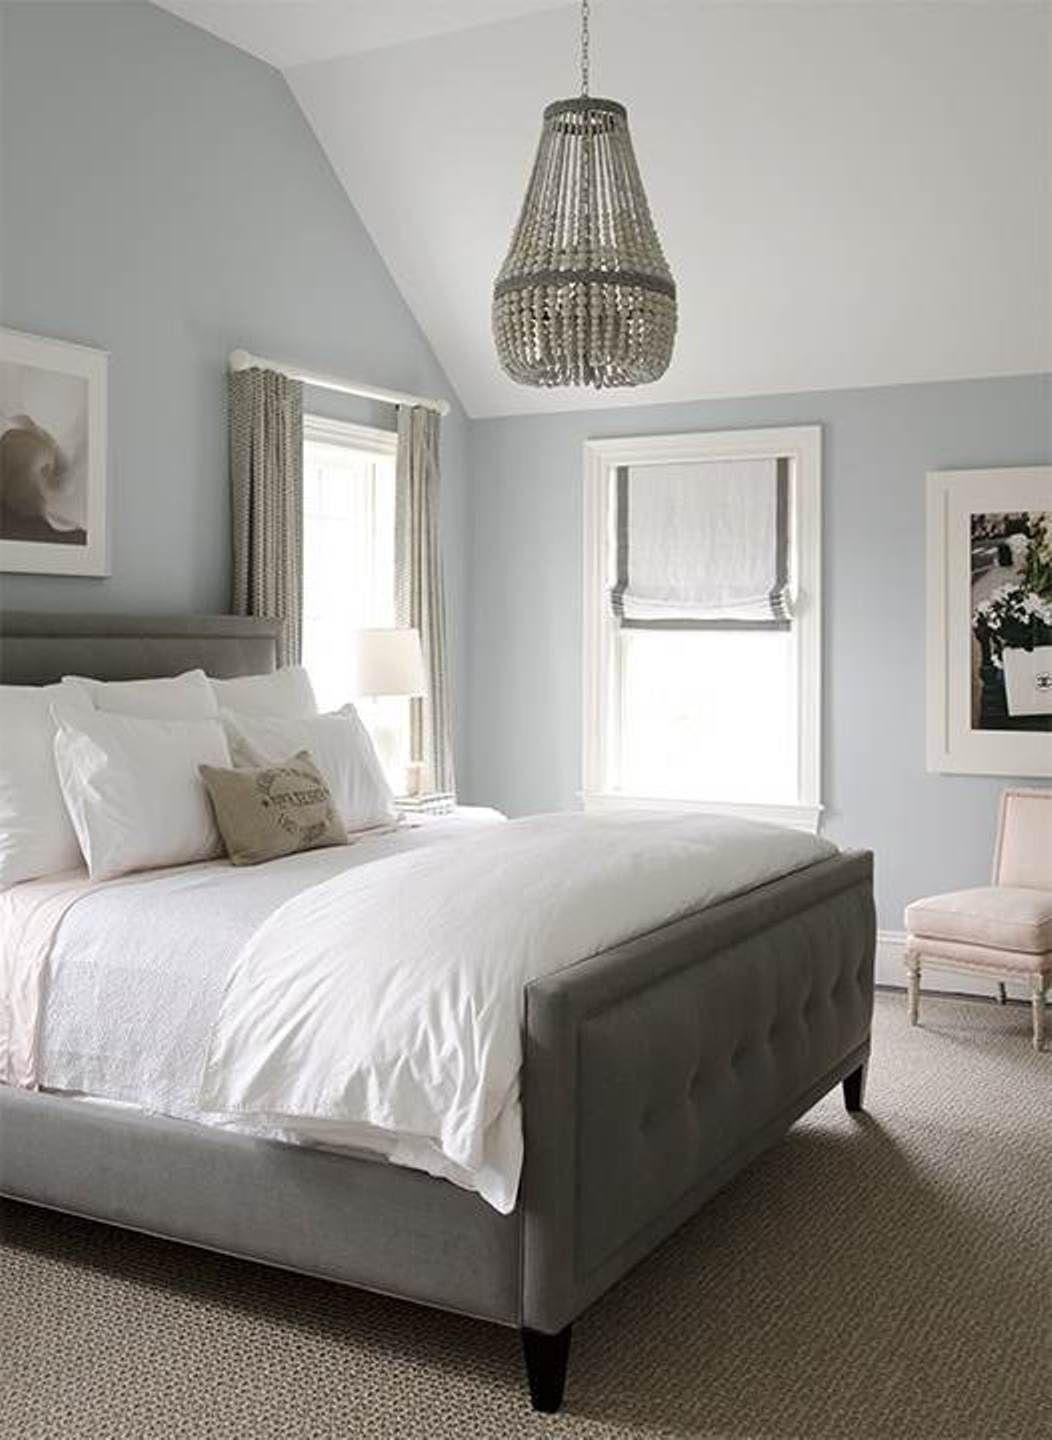 10 Beautiful Master Bedroom Ideas On A Budget love the grey cute master bedroom ideas on a budget decorating 2020